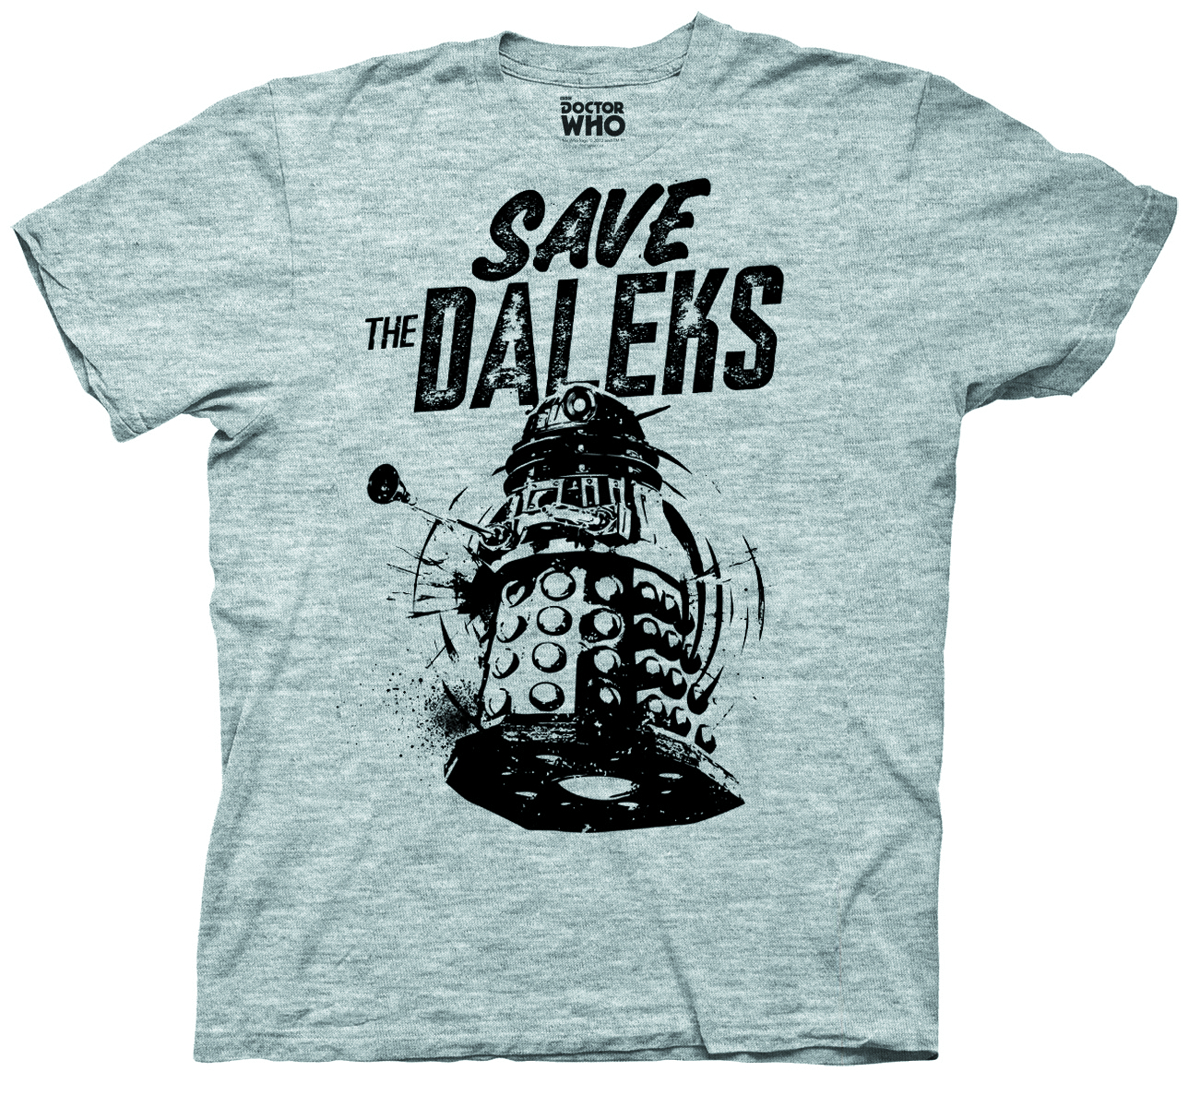 DOCTOR WHO SAVE THE DALEKS GRAY T/S XXL